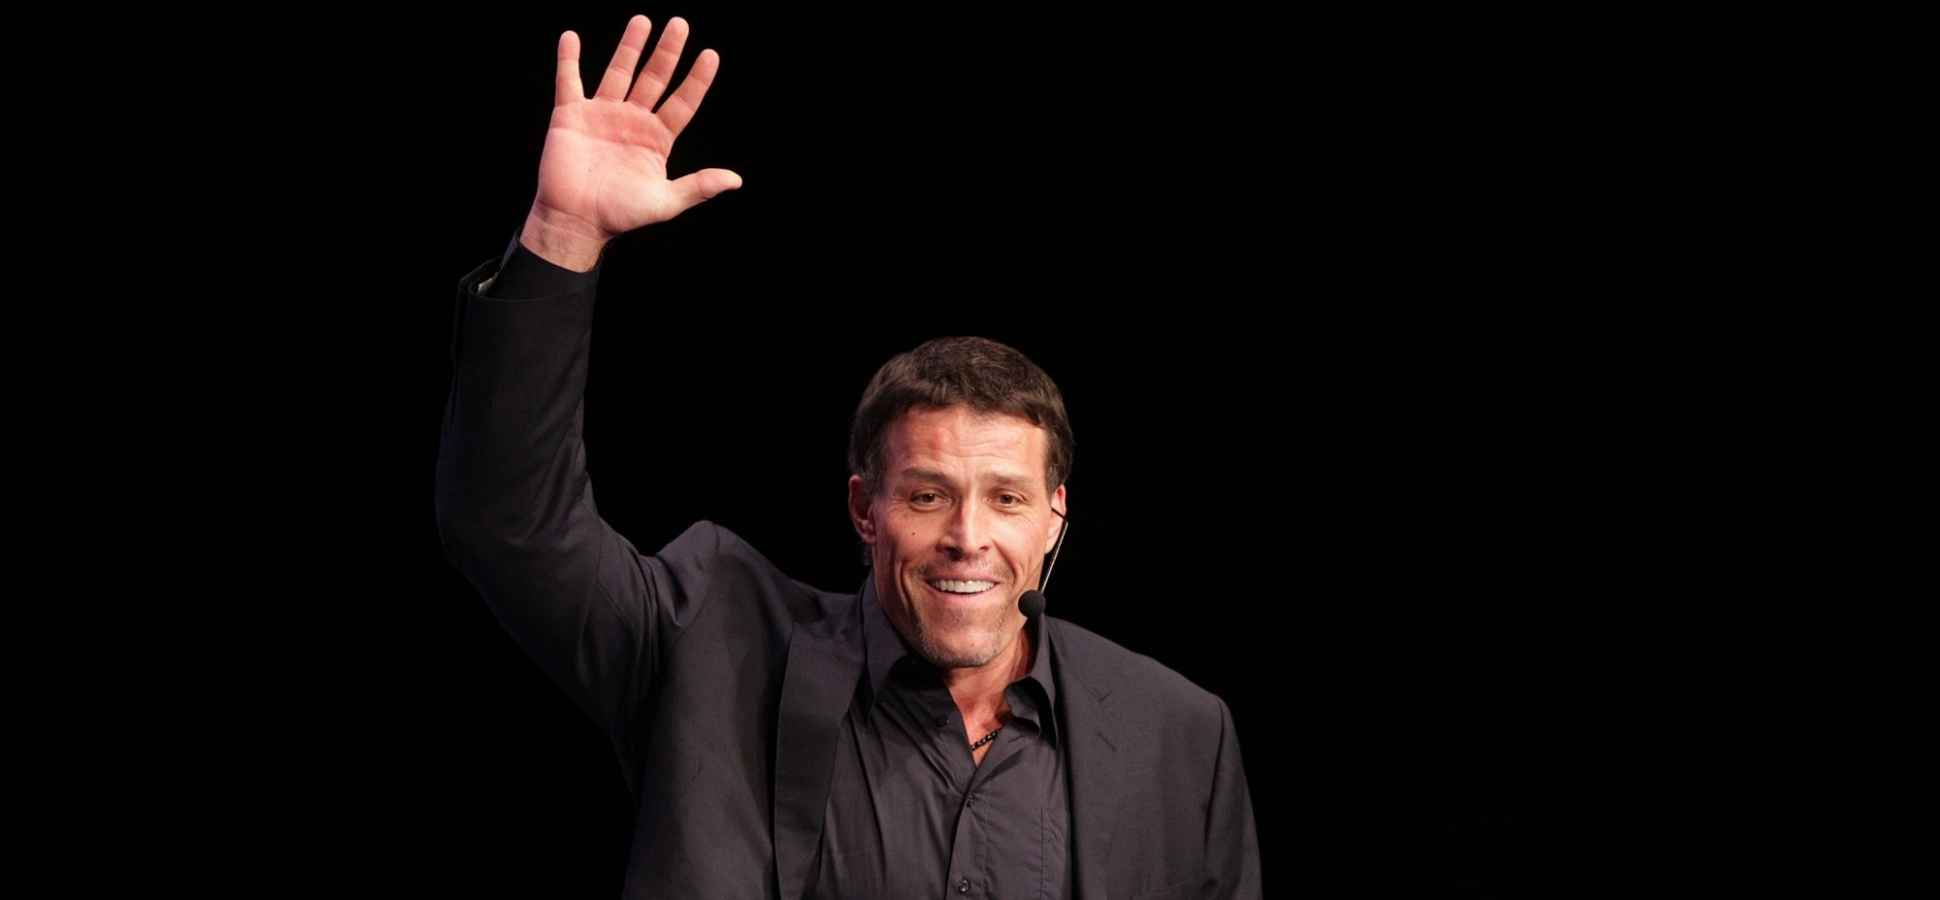 Tony Robbins's 5 Best Habits for Happiness and Success